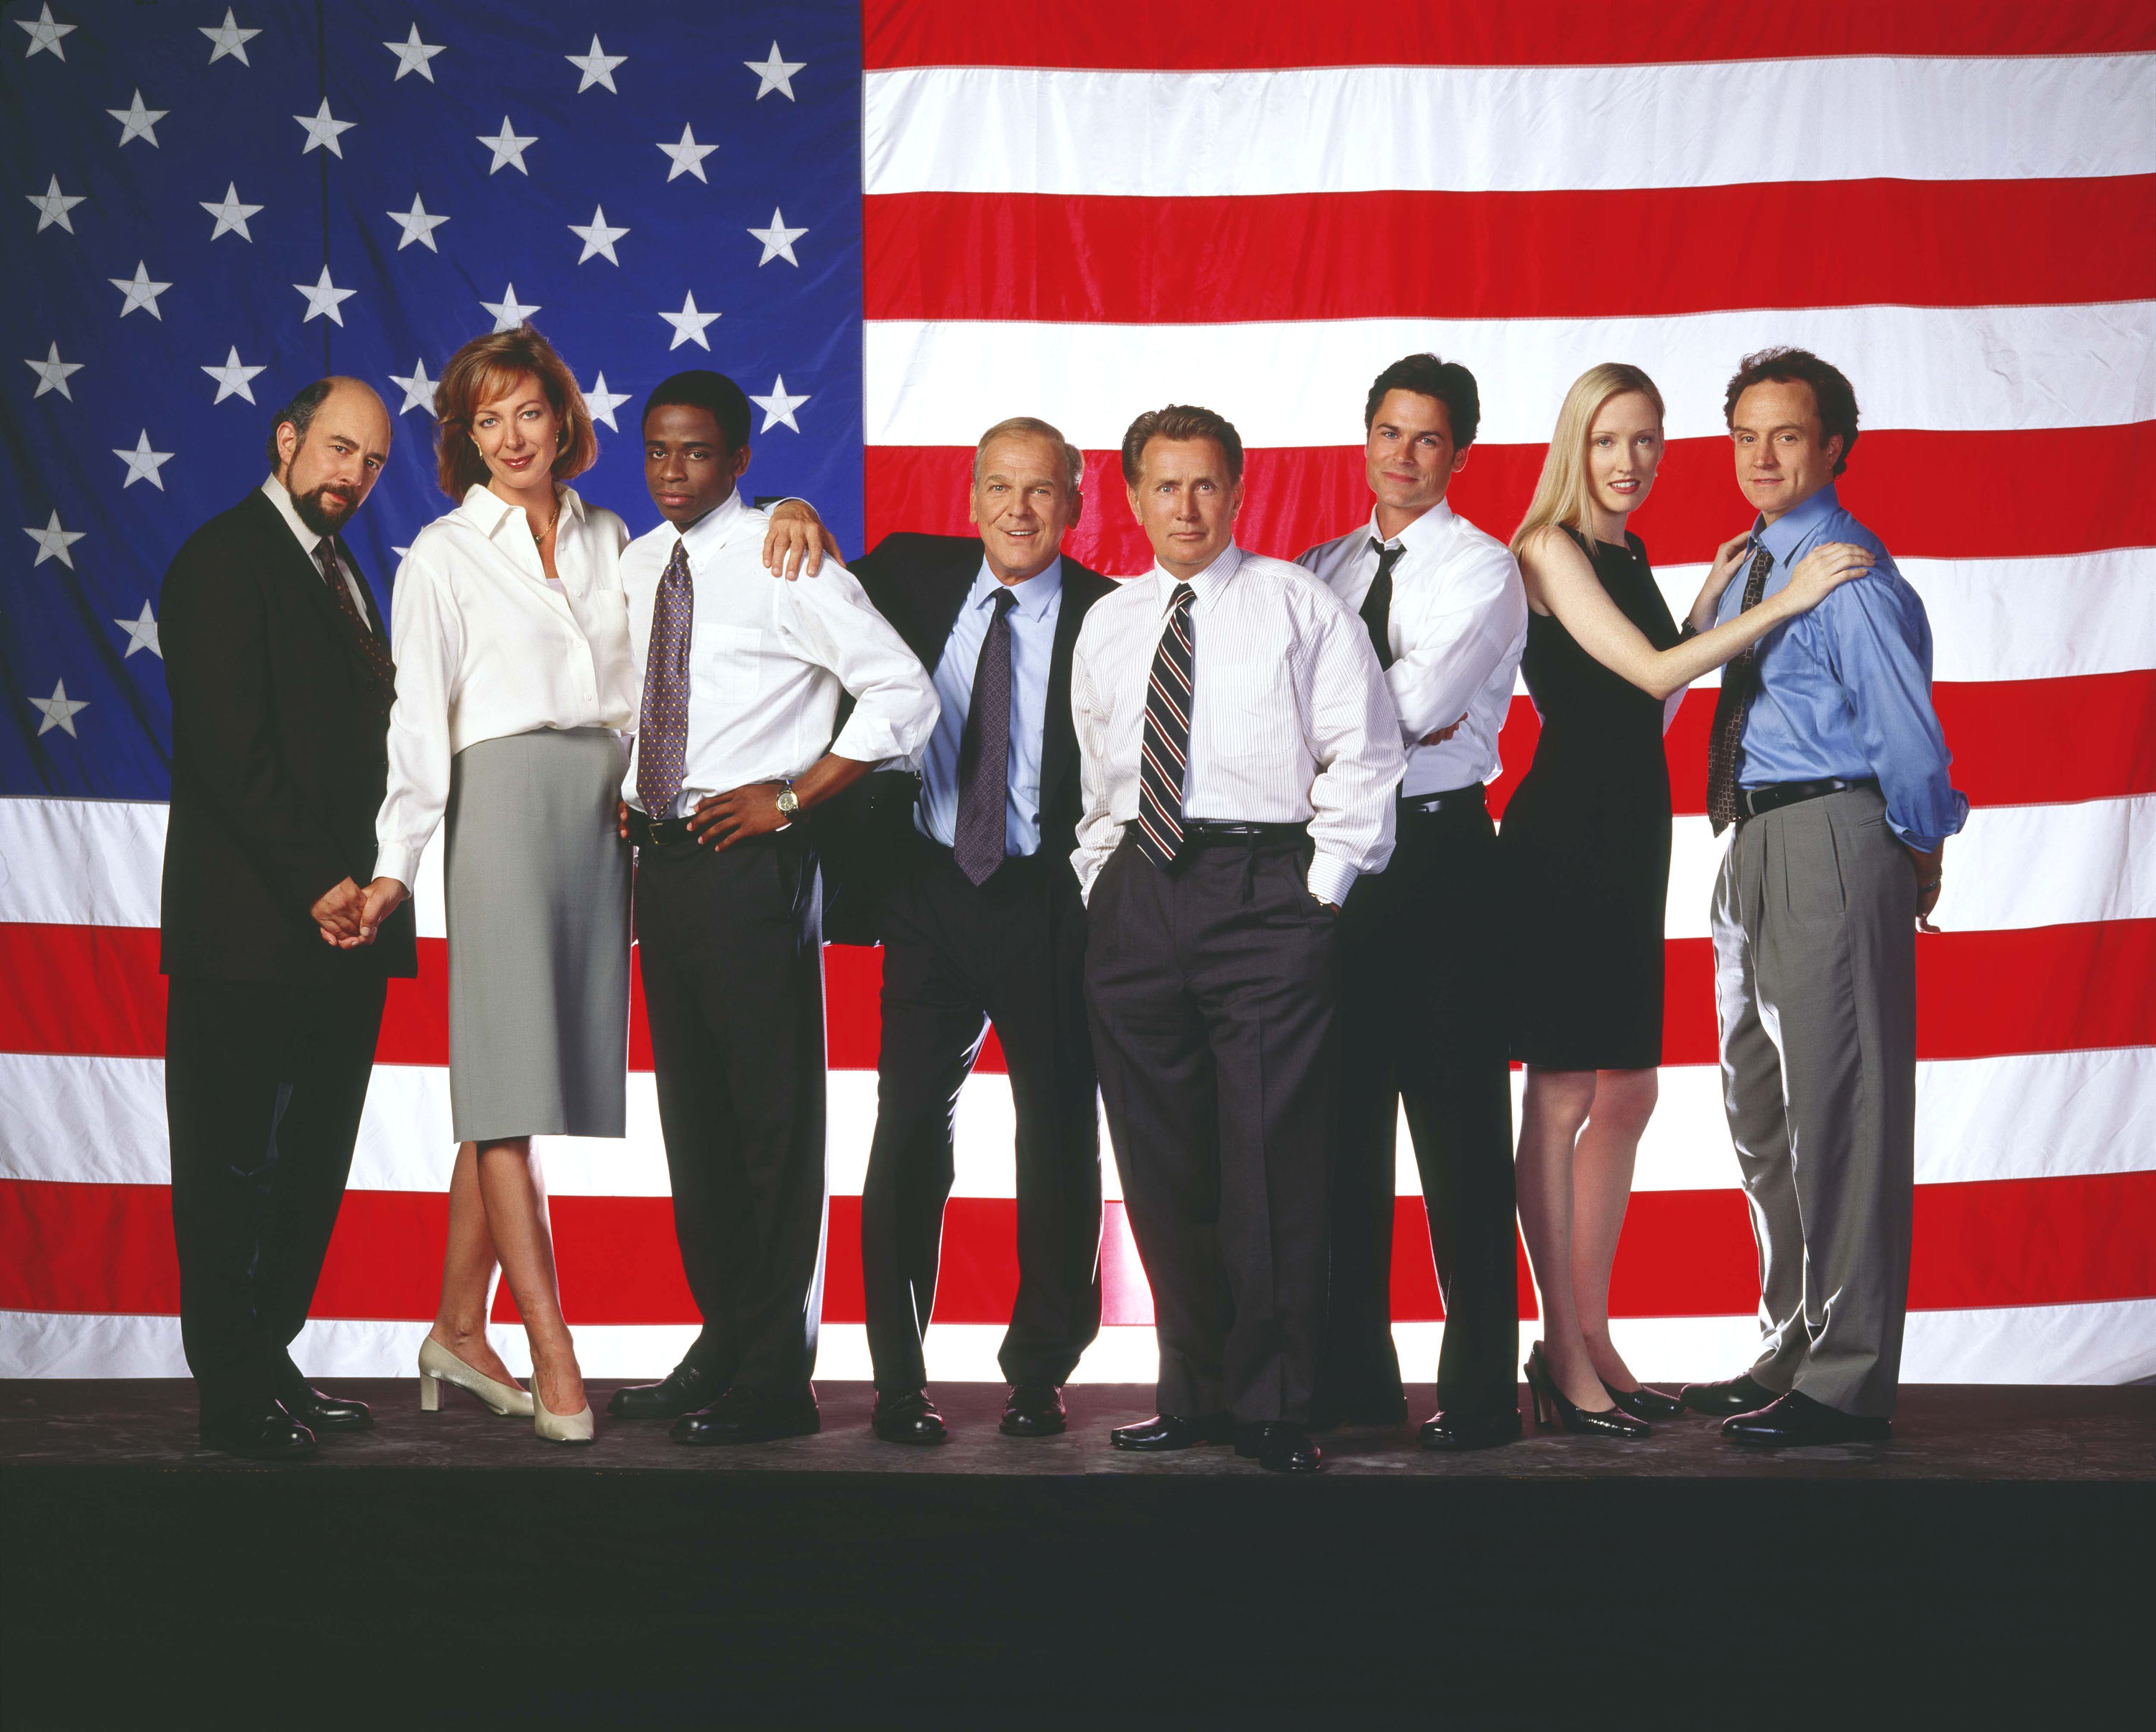 The cast of the The West Wing